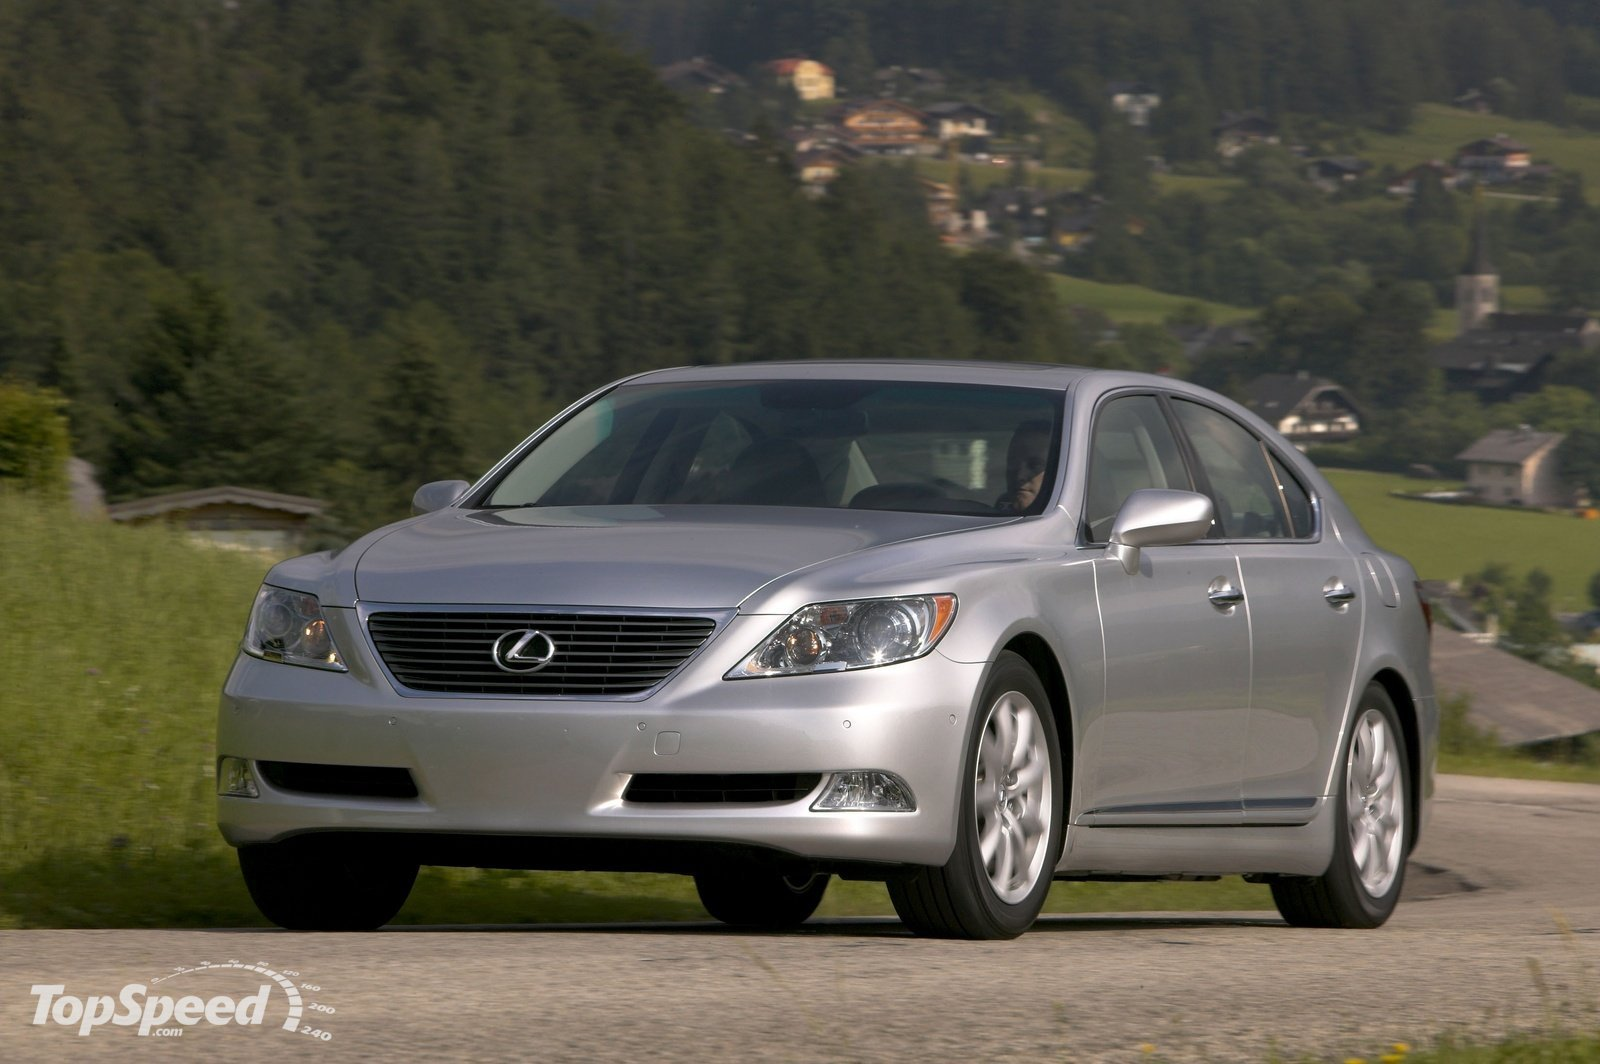 2007 lexus ls 460 and ls 460l prices announced news top speed. Black Bedroom Furniture Sets. Home Design Ideas